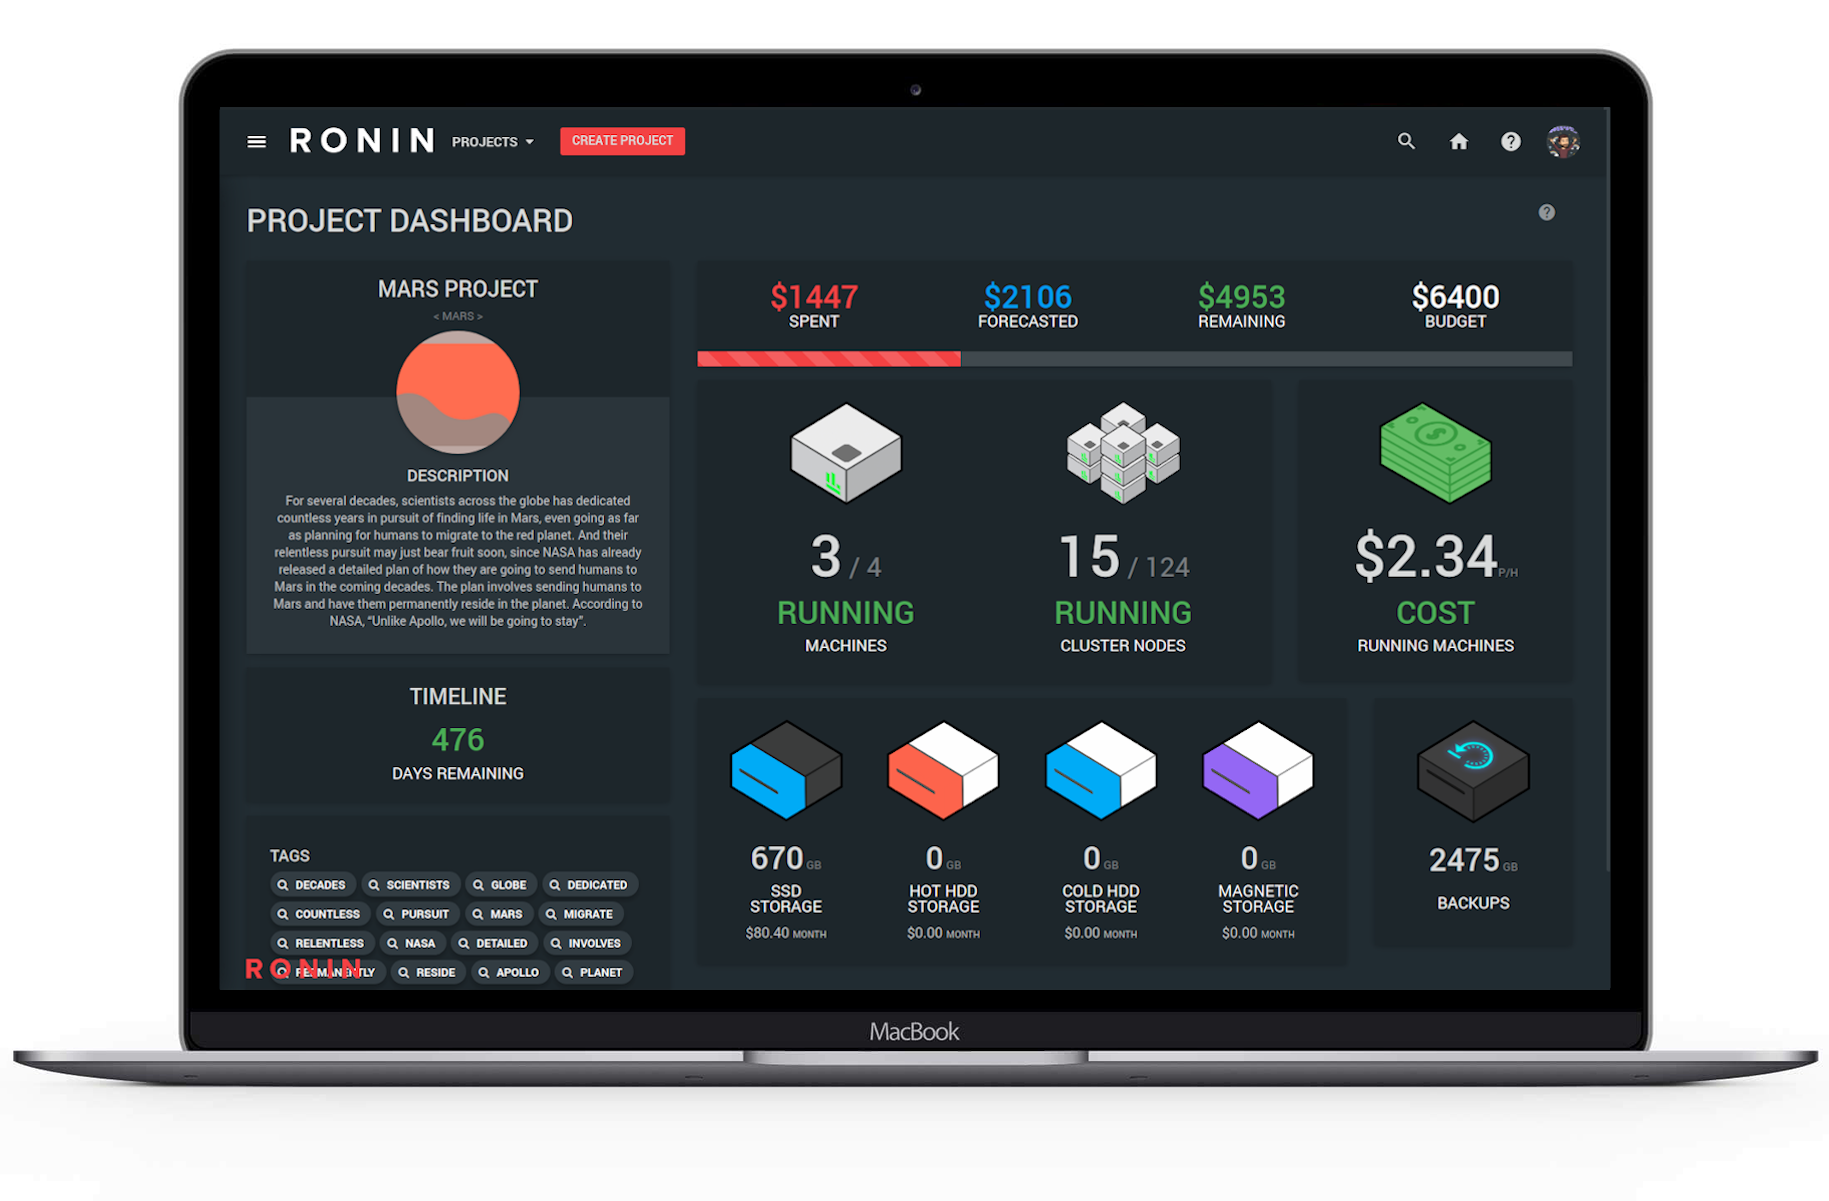 RONIN - Our Amazon Web Services research platform.